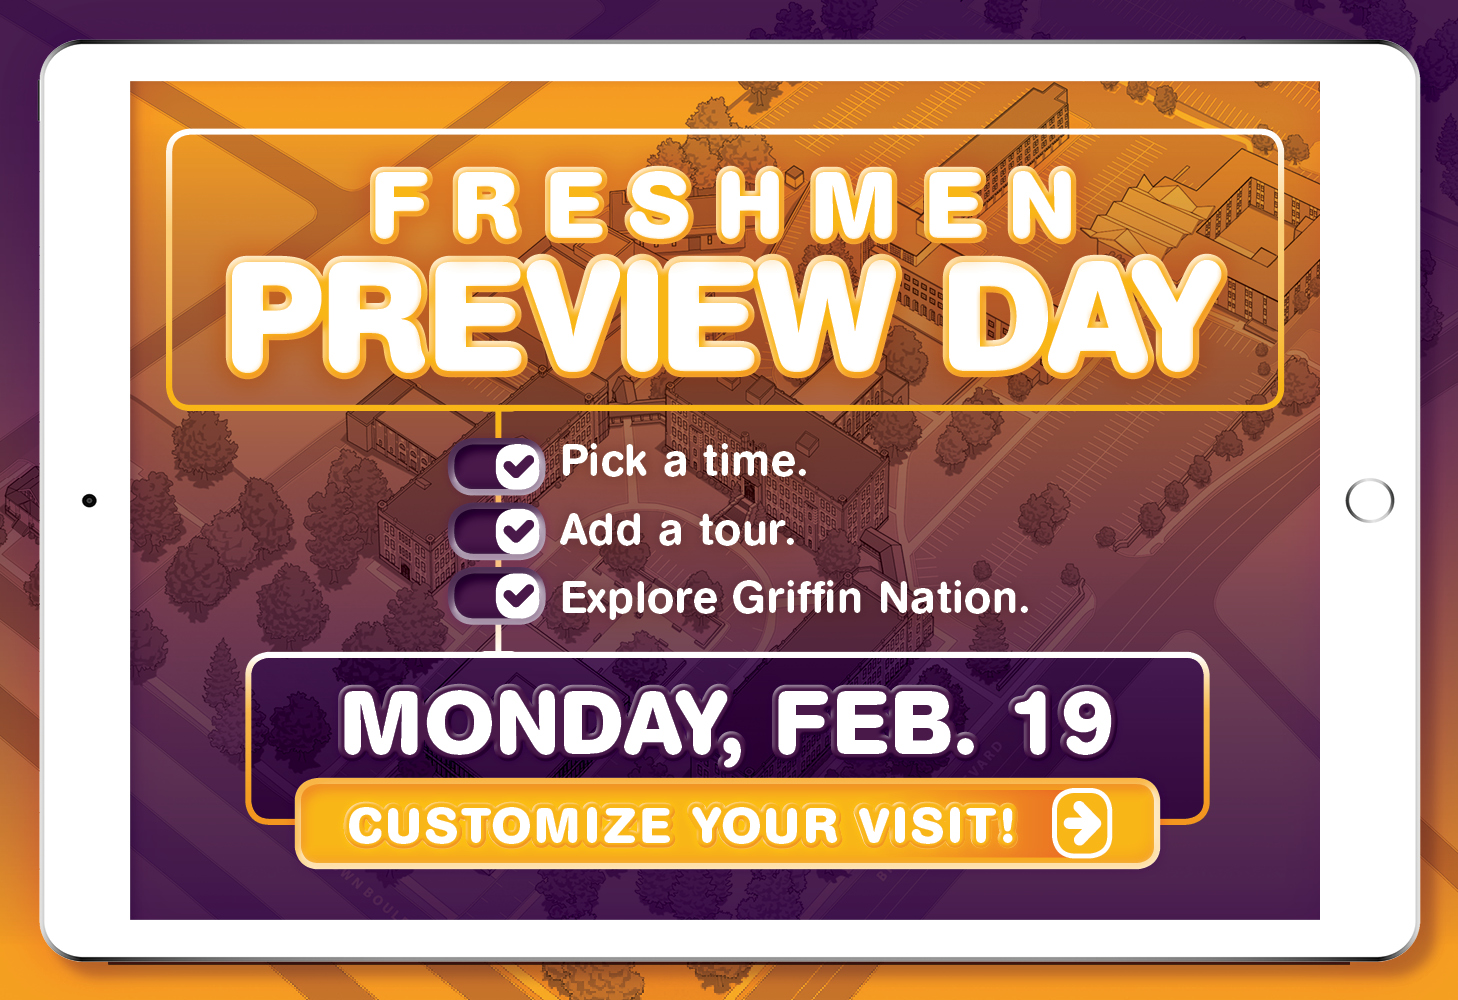 Freshman Preview Day Pop-Up Reminder